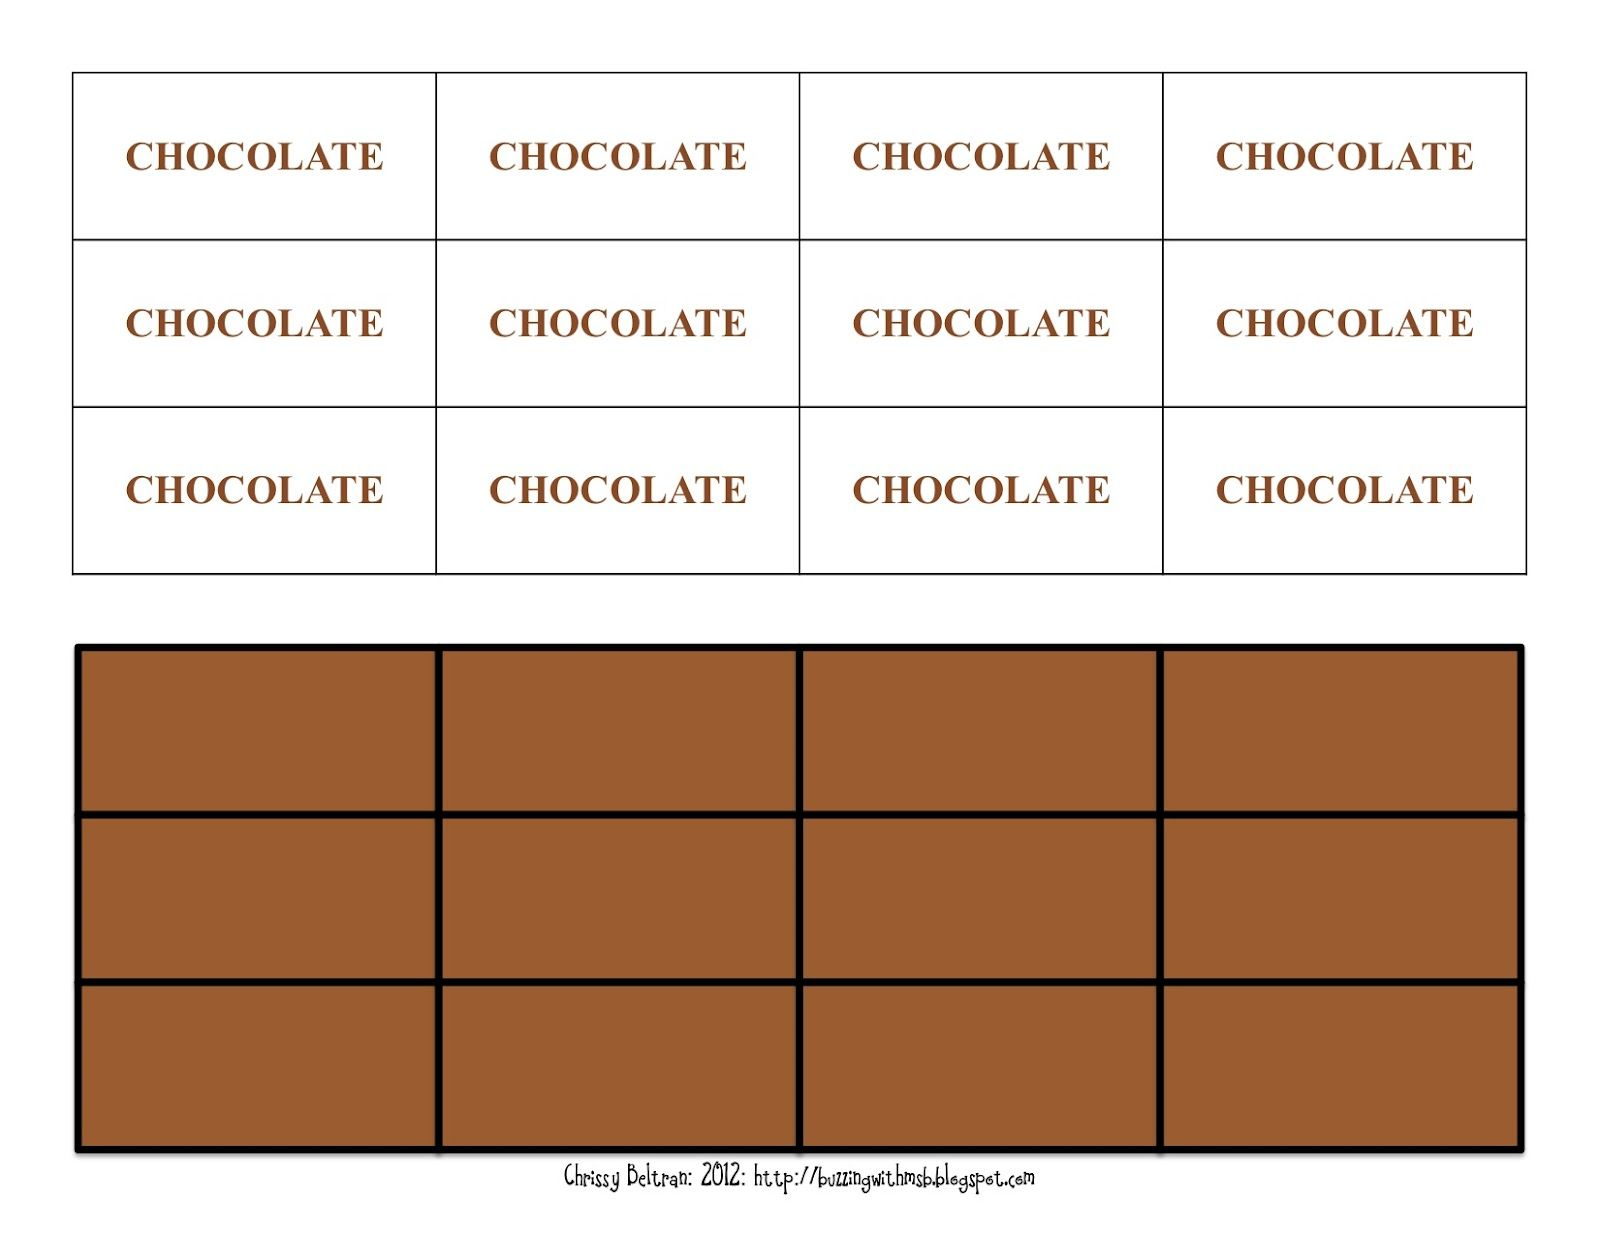 3 6 Free Resources Hershey S Fraction Book Chocolate